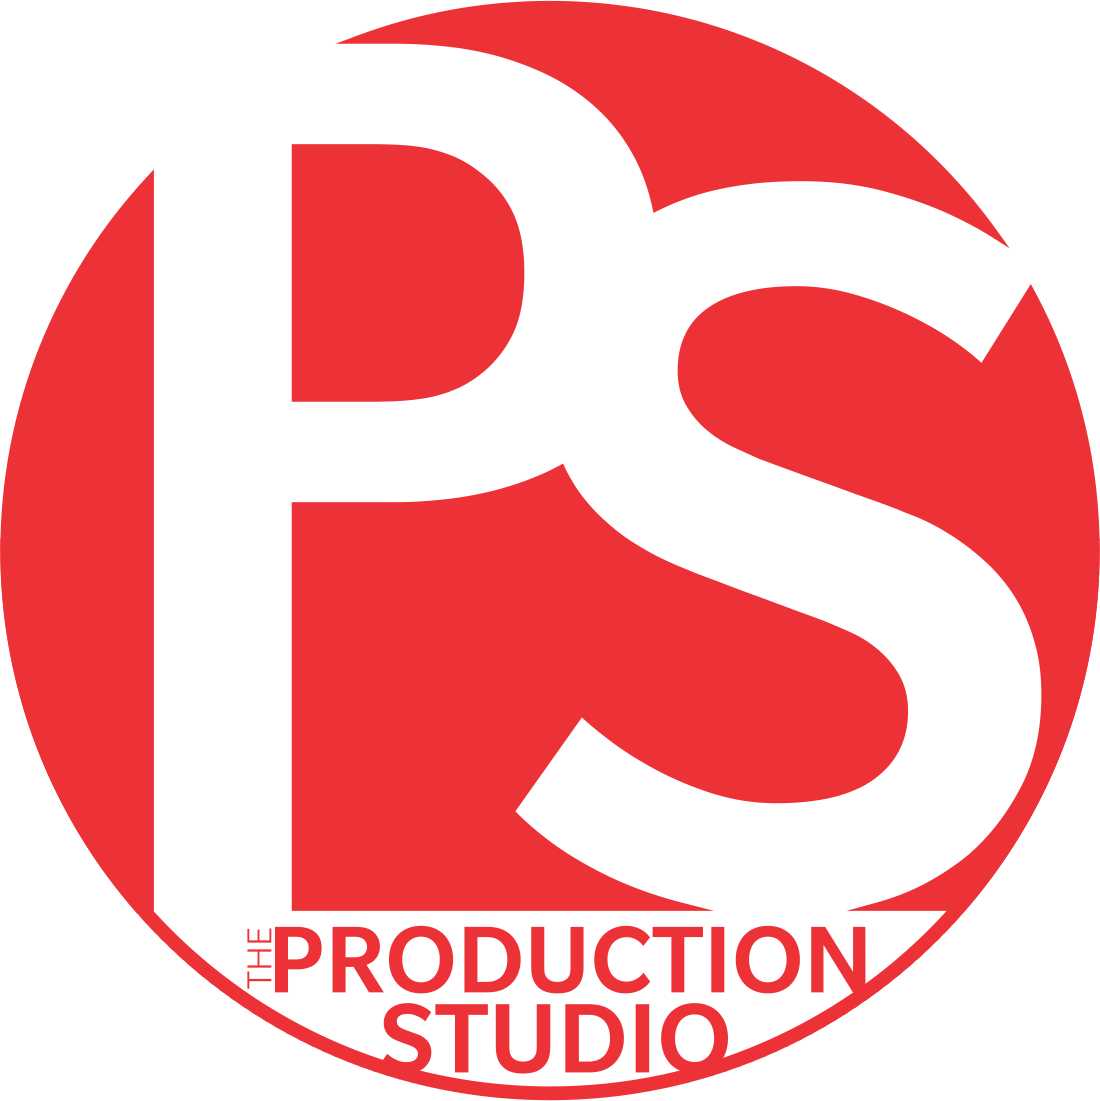 The Production Studio